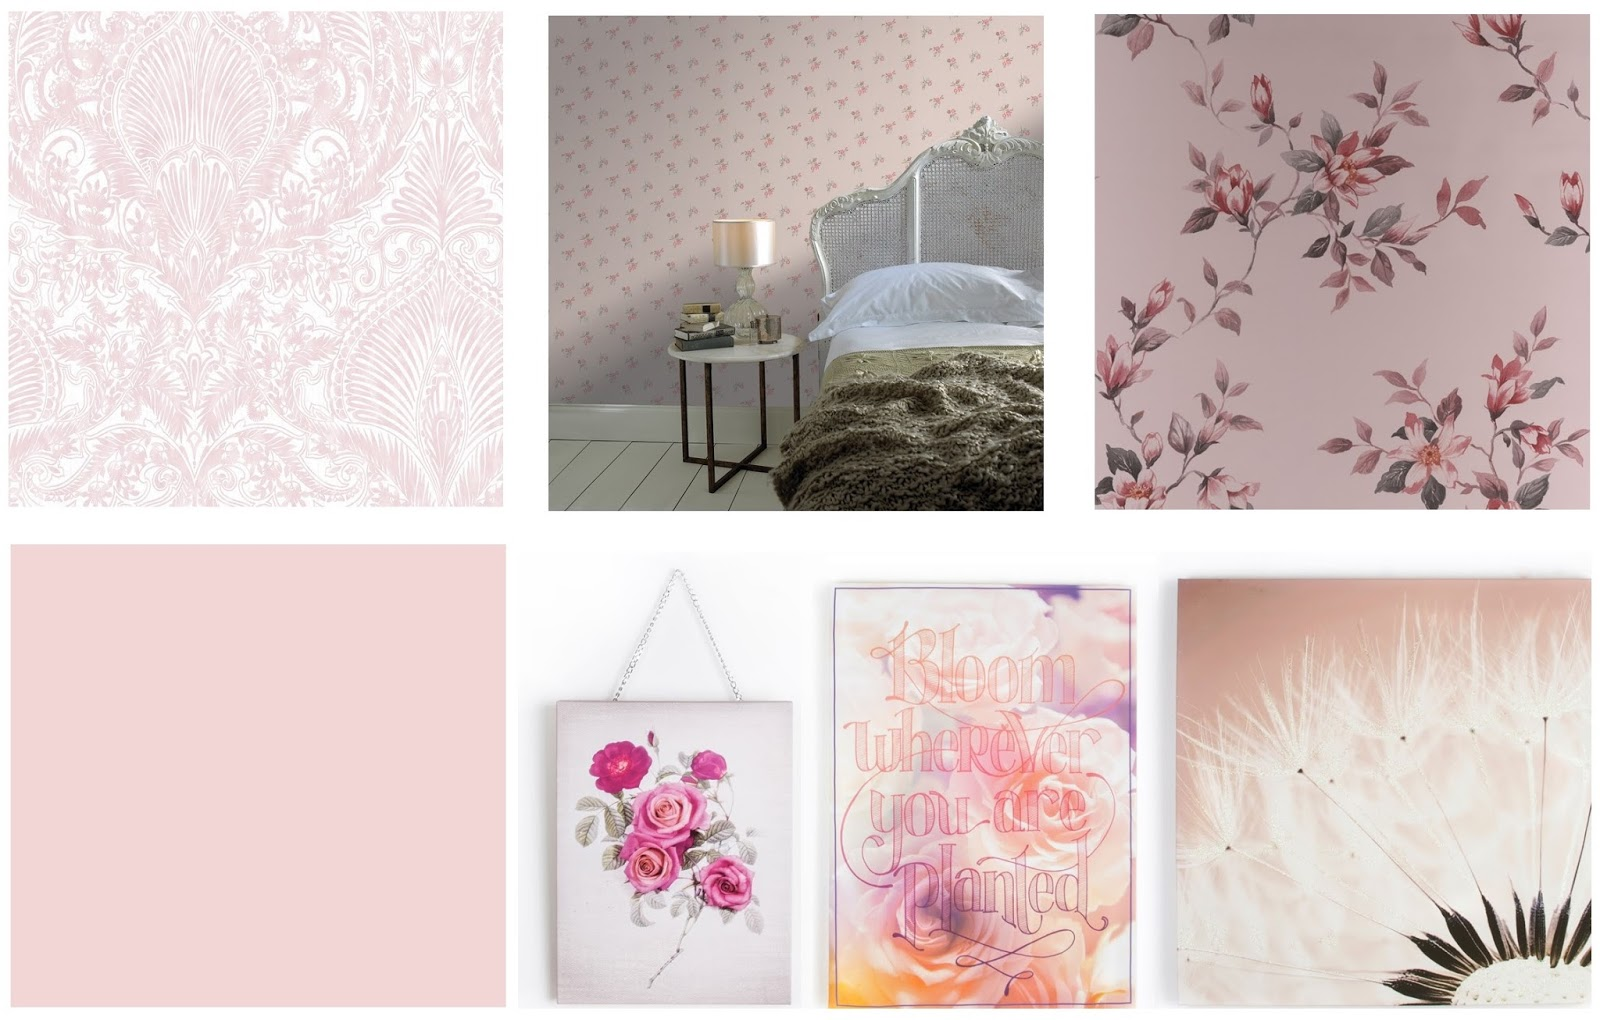 pantone colour of the year 2016 rose quartz and serenity don 39 t cramp my style. Black Bedroom Furniture Sets. Home Design Ideas